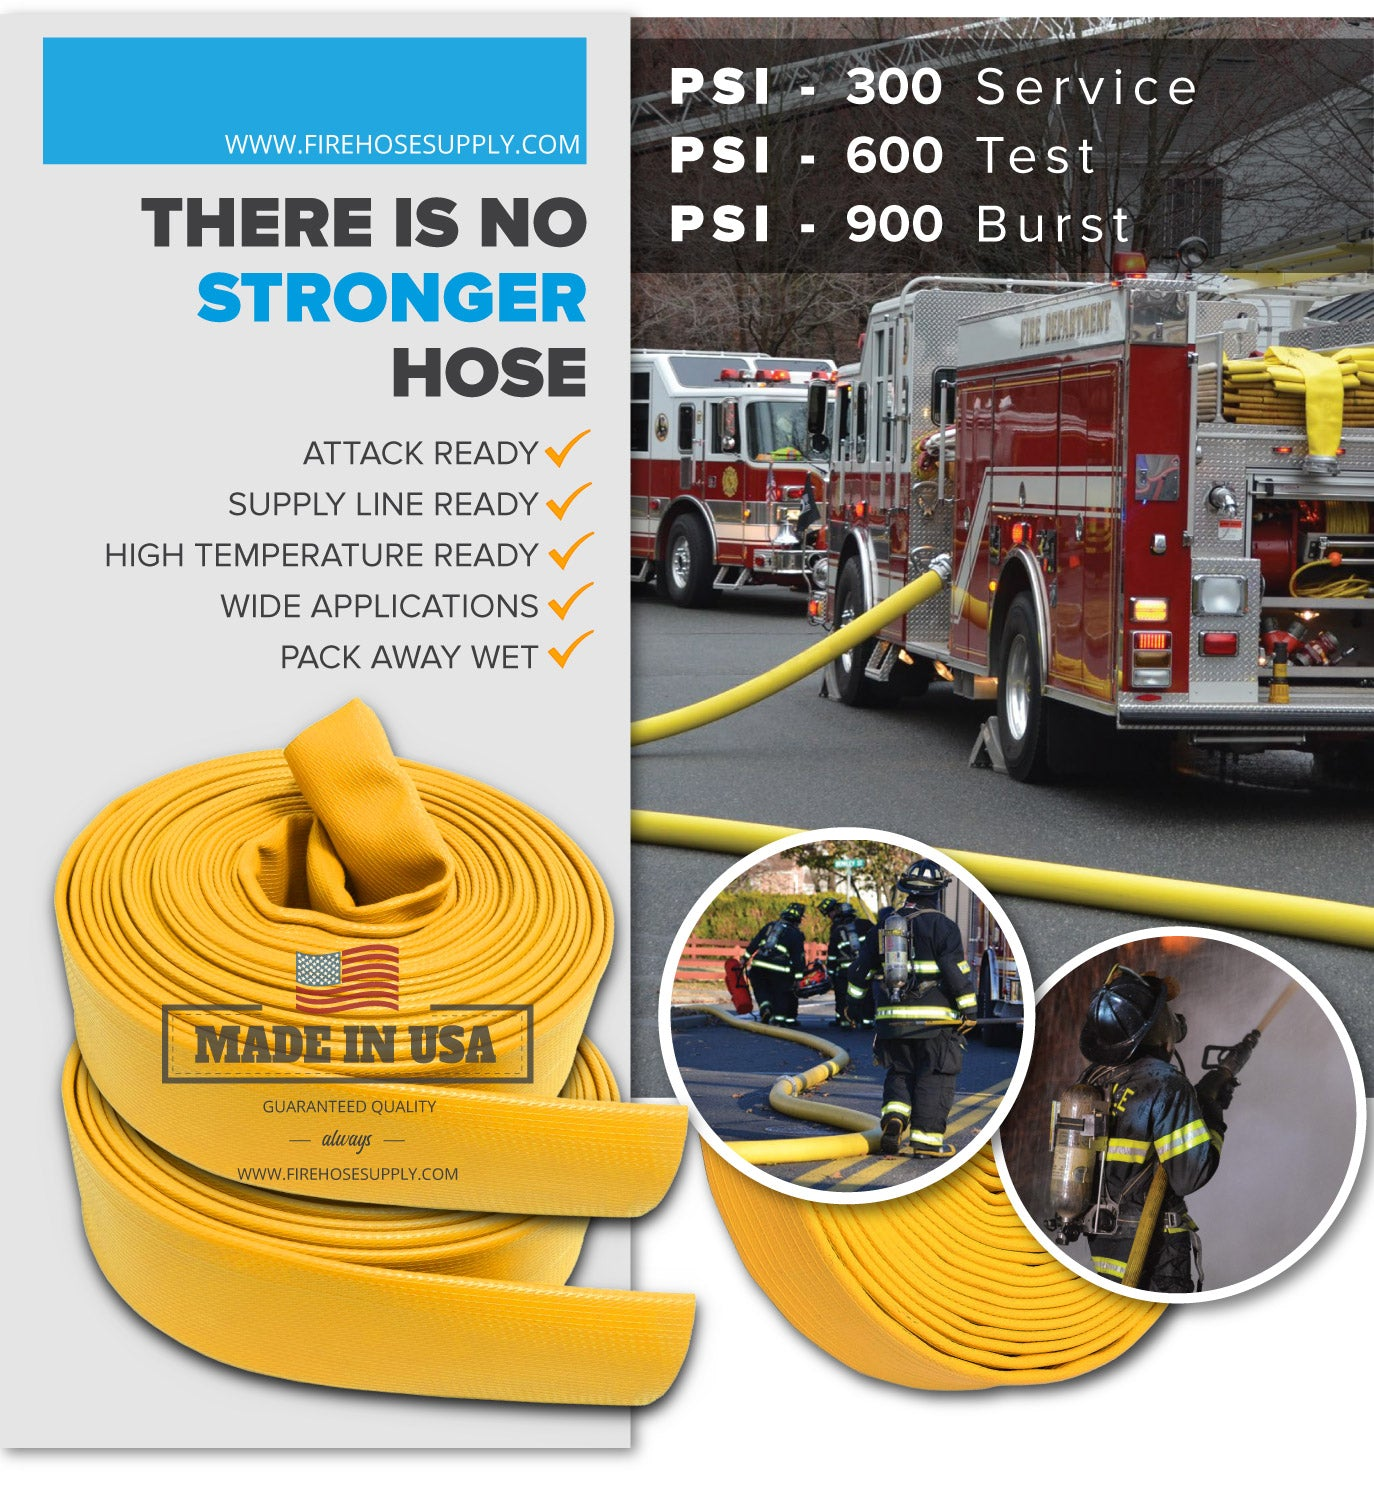 1 Inch Rubber Fire Hose Material Only Supply And Attack Ready Firefighter Yellow 600 PSI Test